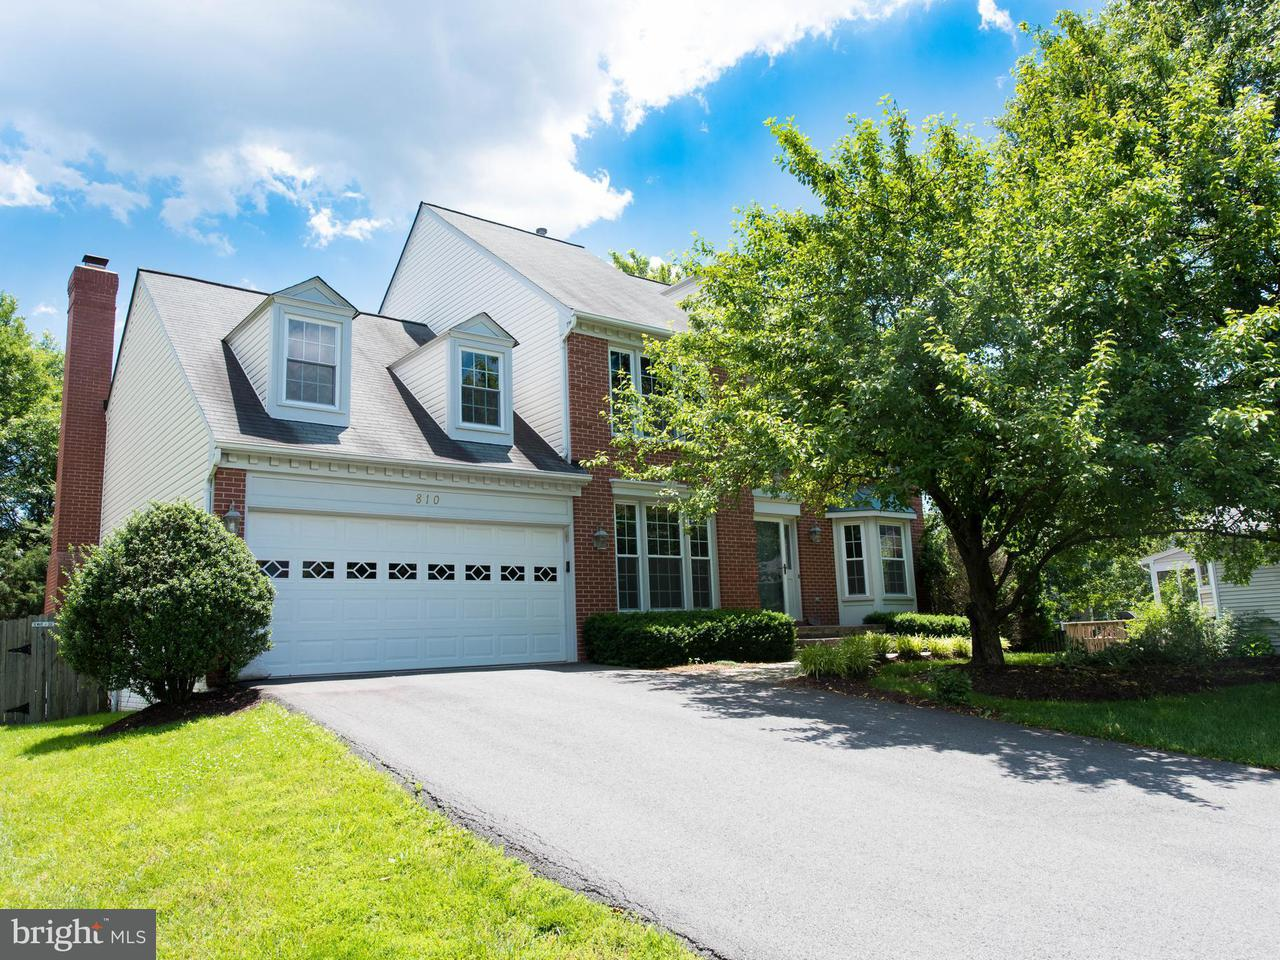 Casa Unifamiliar por un Venta en 810 Autumn Breeze Court 810 Autumn Breeze Court Herndon, Virginia 20170 Estados Unidos